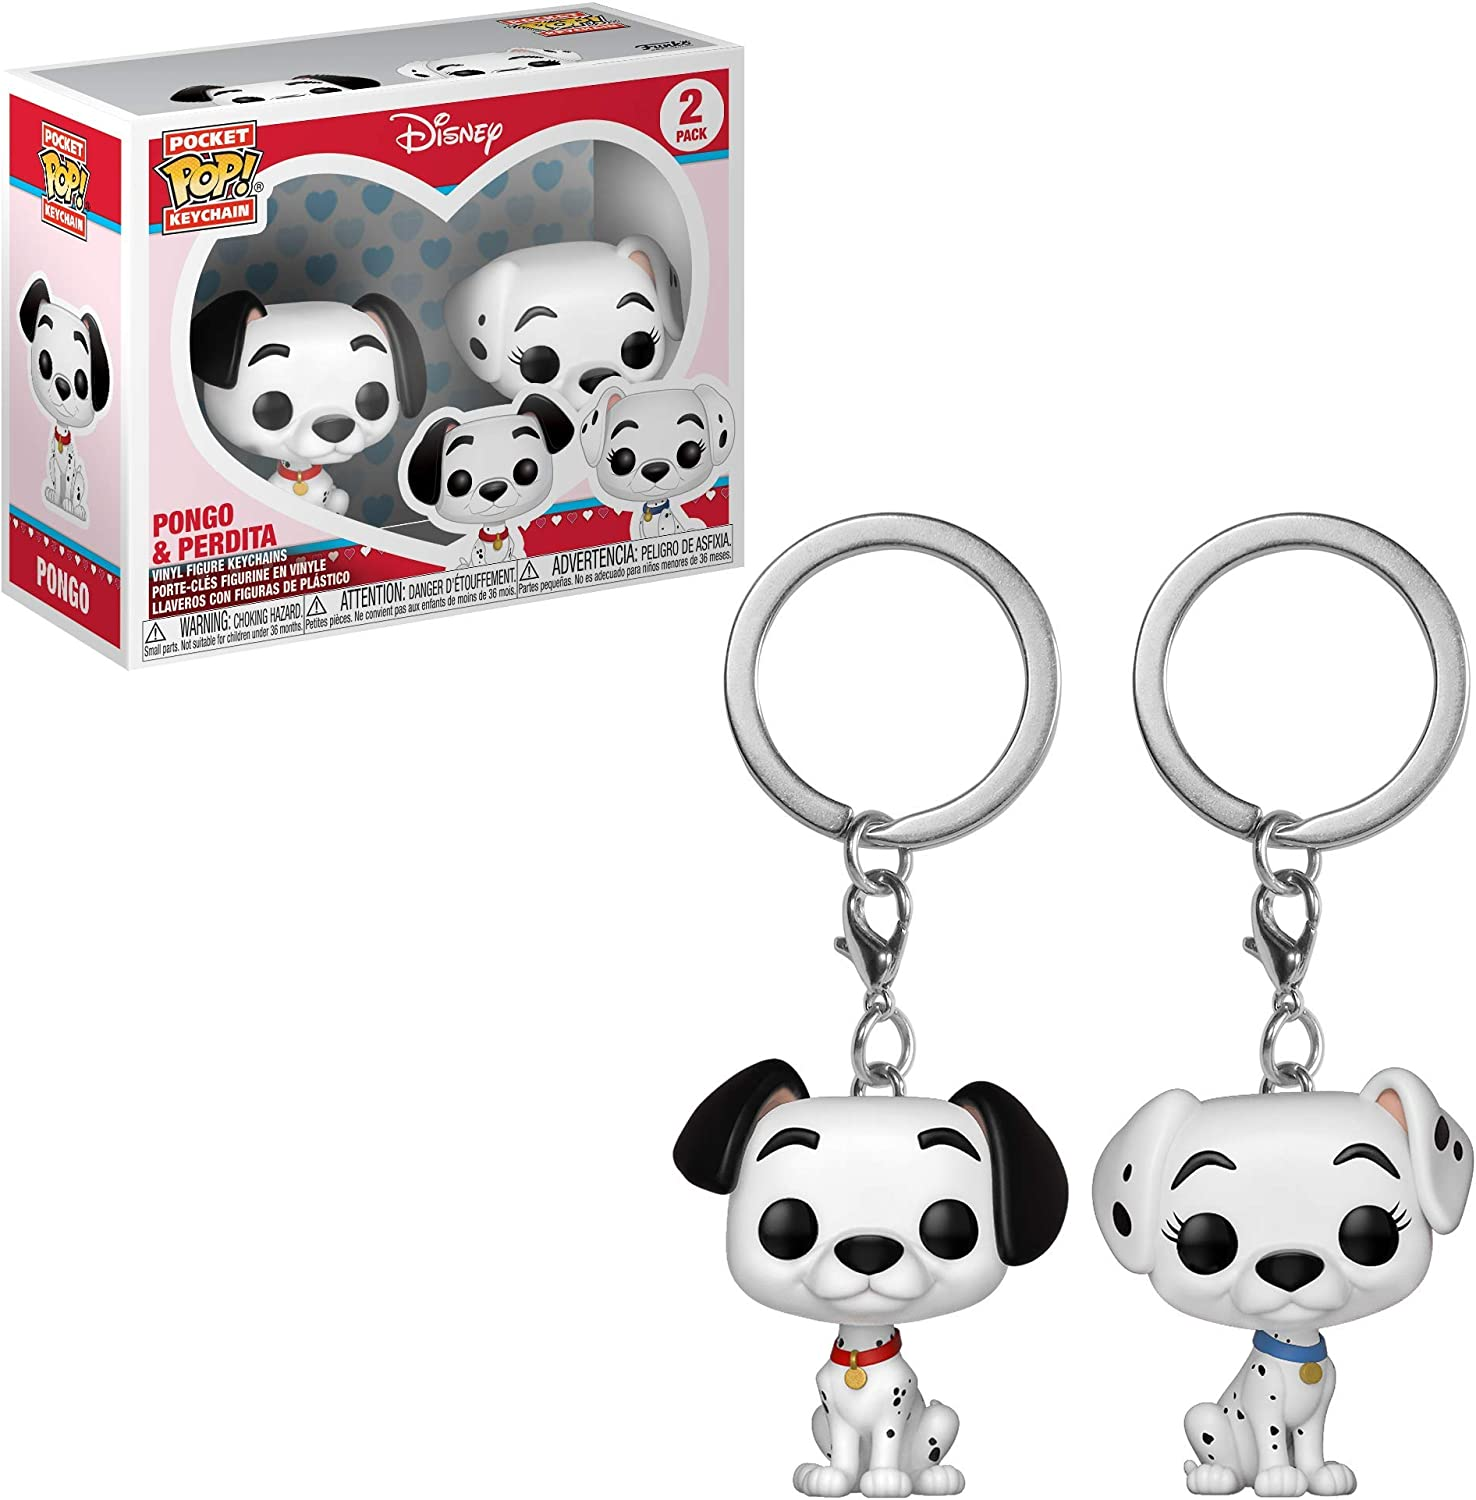 Funko Pop! Keychain: 101 Dalmations - Pongo & Perdita 2 Pack Toy, Multicolor